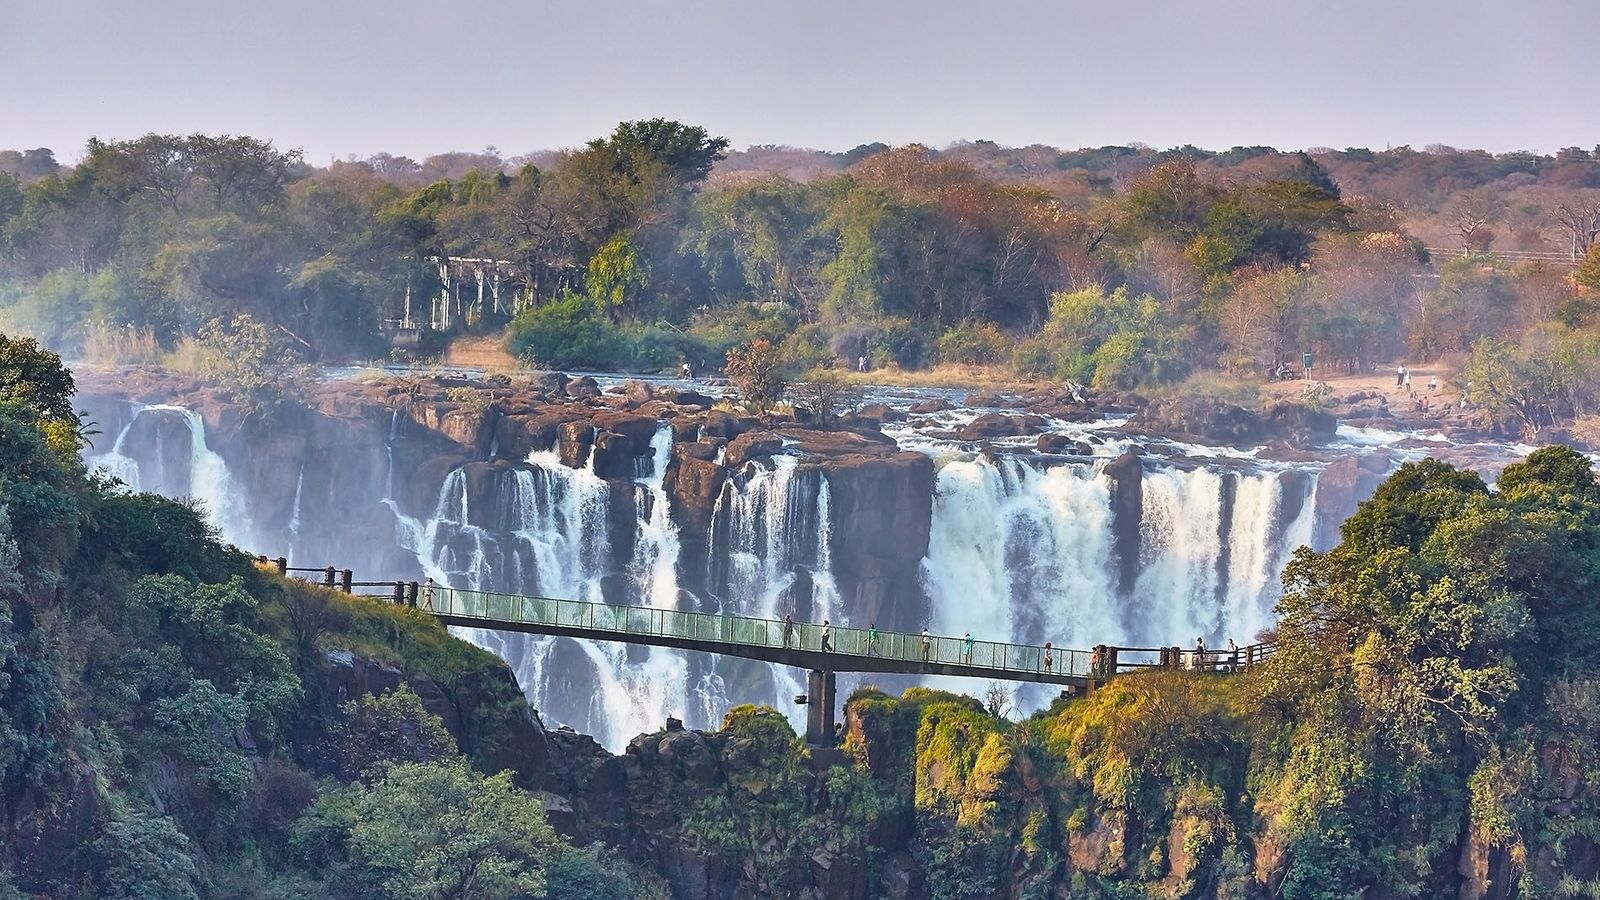 Tourists cross the Knife Edge Bridge with the mighty Victoria Falls in the background.